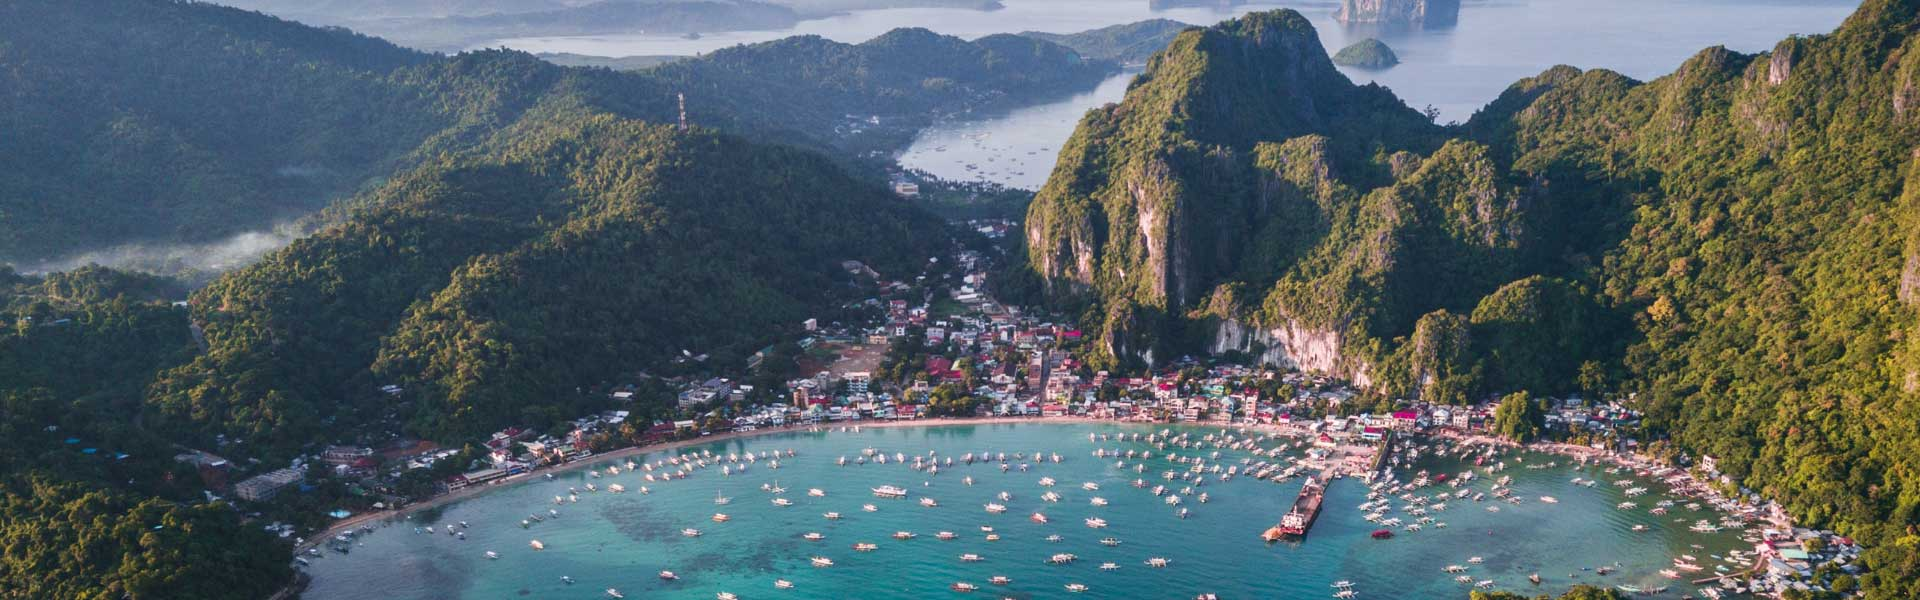 Where to stay in El Nido - Shows El Nido bay from above